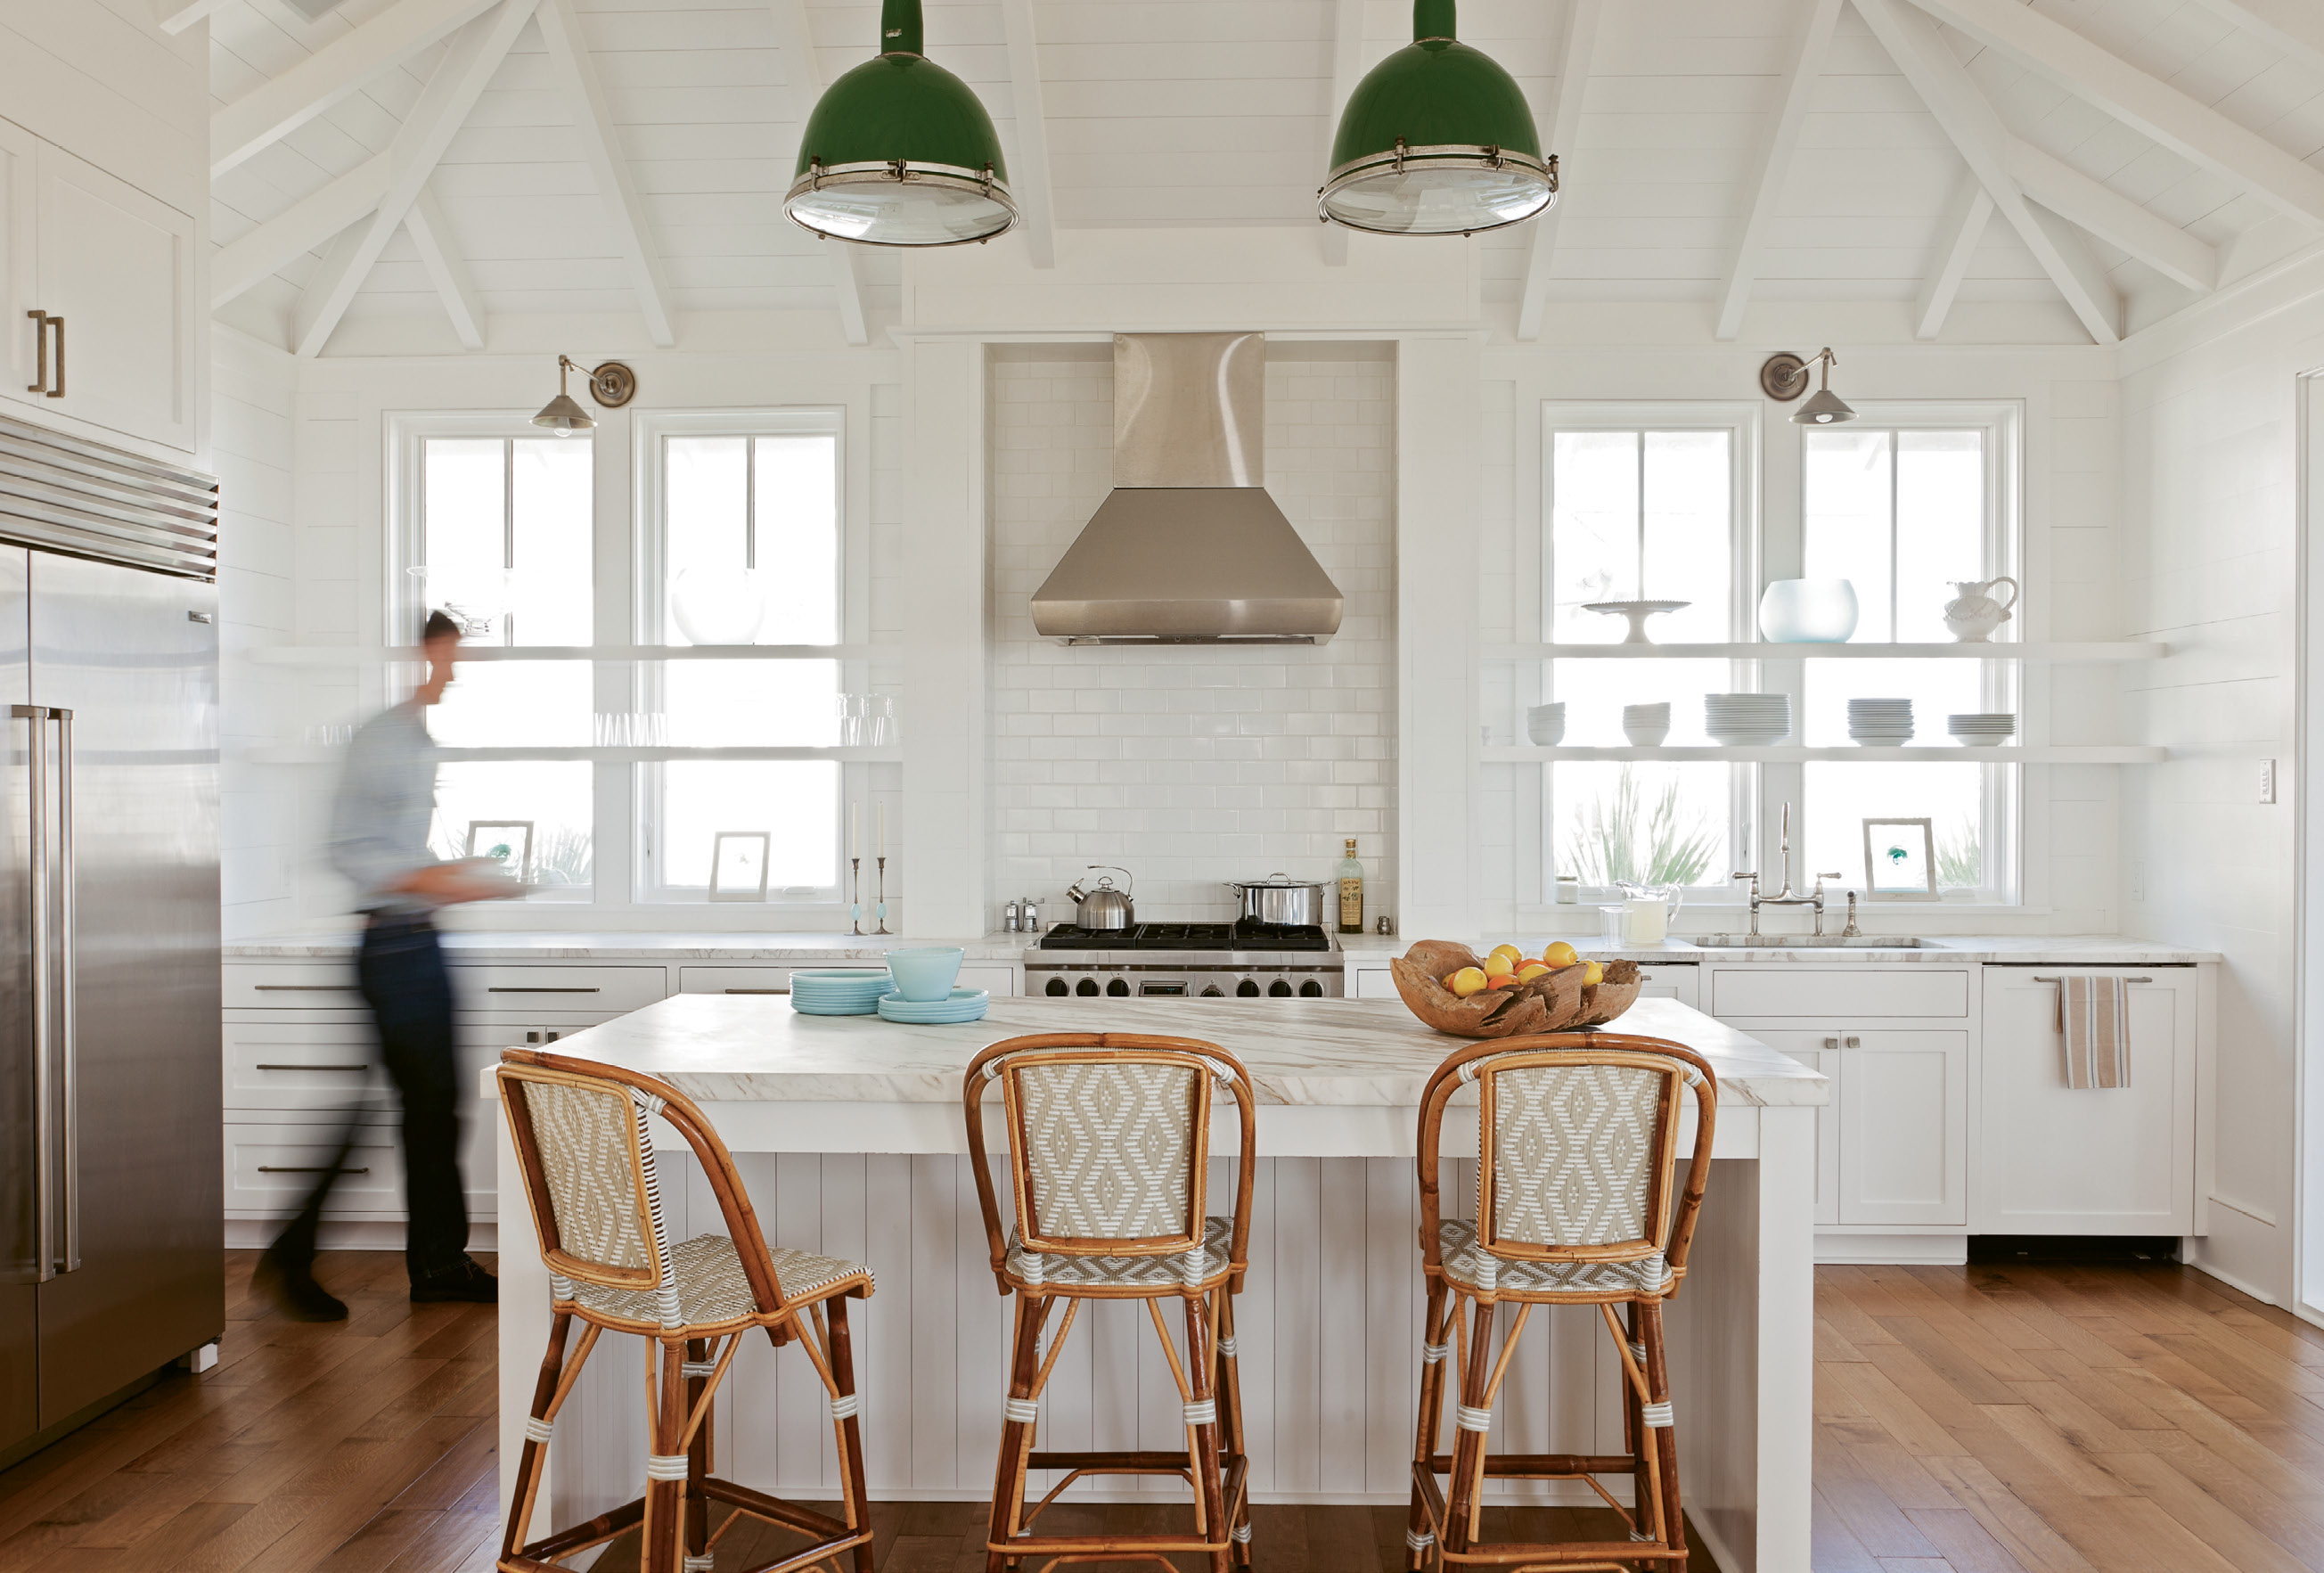 Bright Ideas: Keenan refashioned two old gymnasium lights, hung by a whipped rope cord, as kitchen pendants, adding a pop of color to the mostly white space.